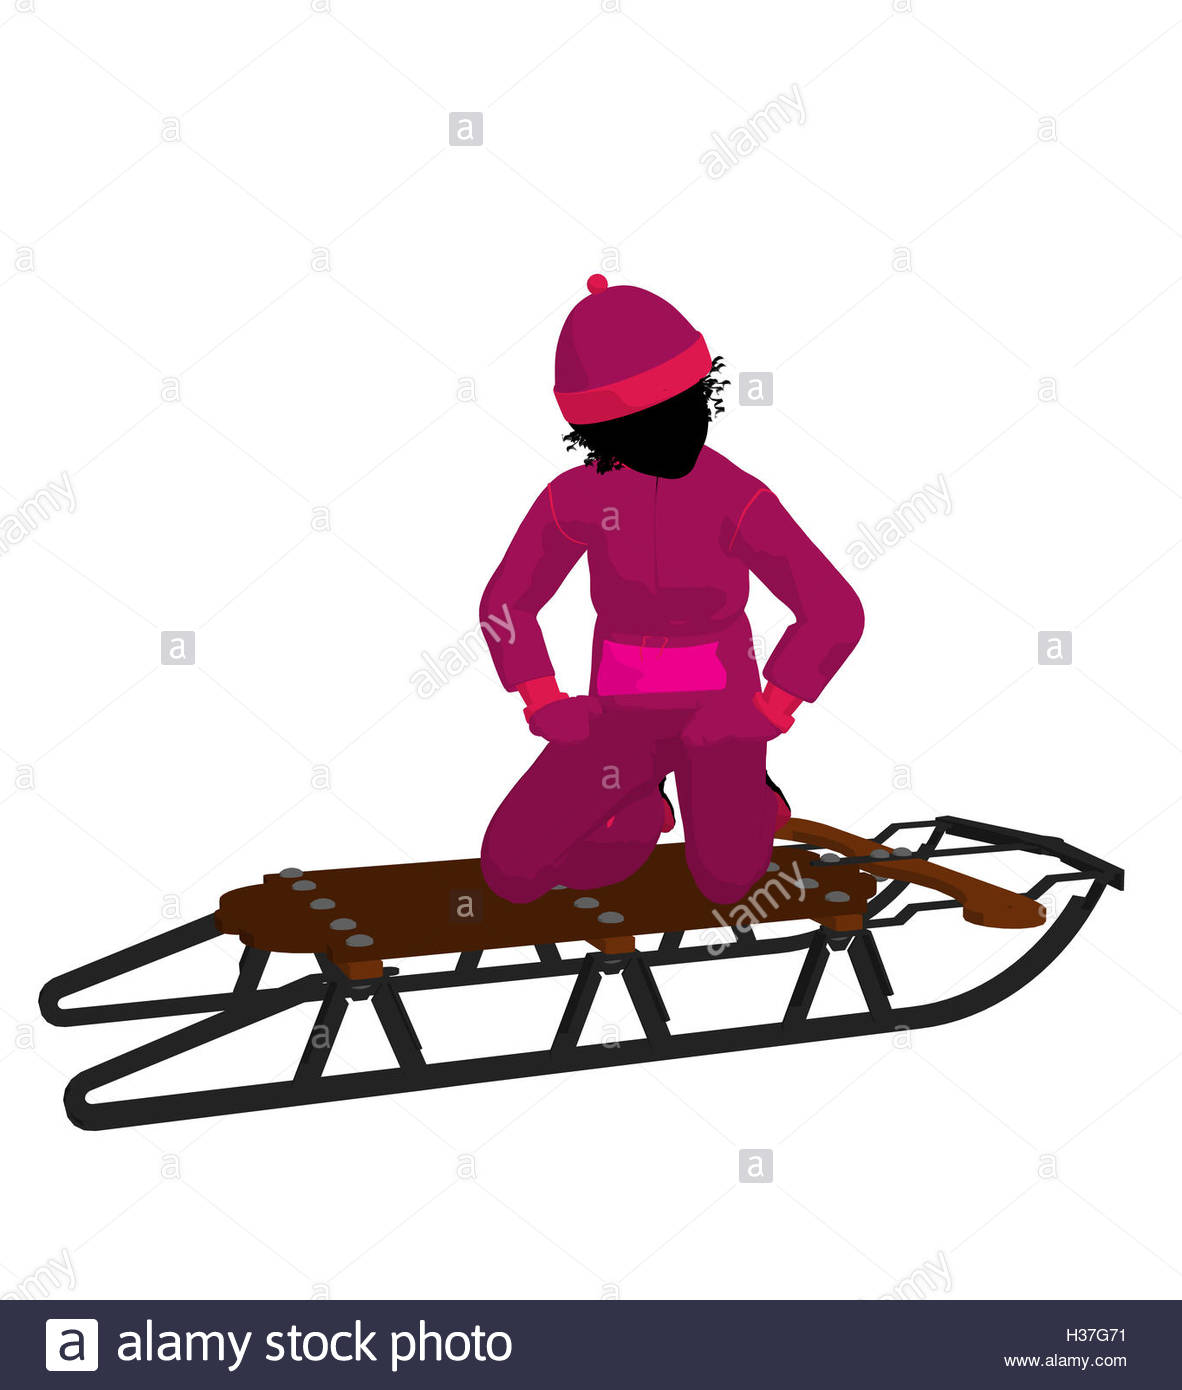 1182x1390 African American Girl On A Sled Silhouette Stock Photo, Royalty